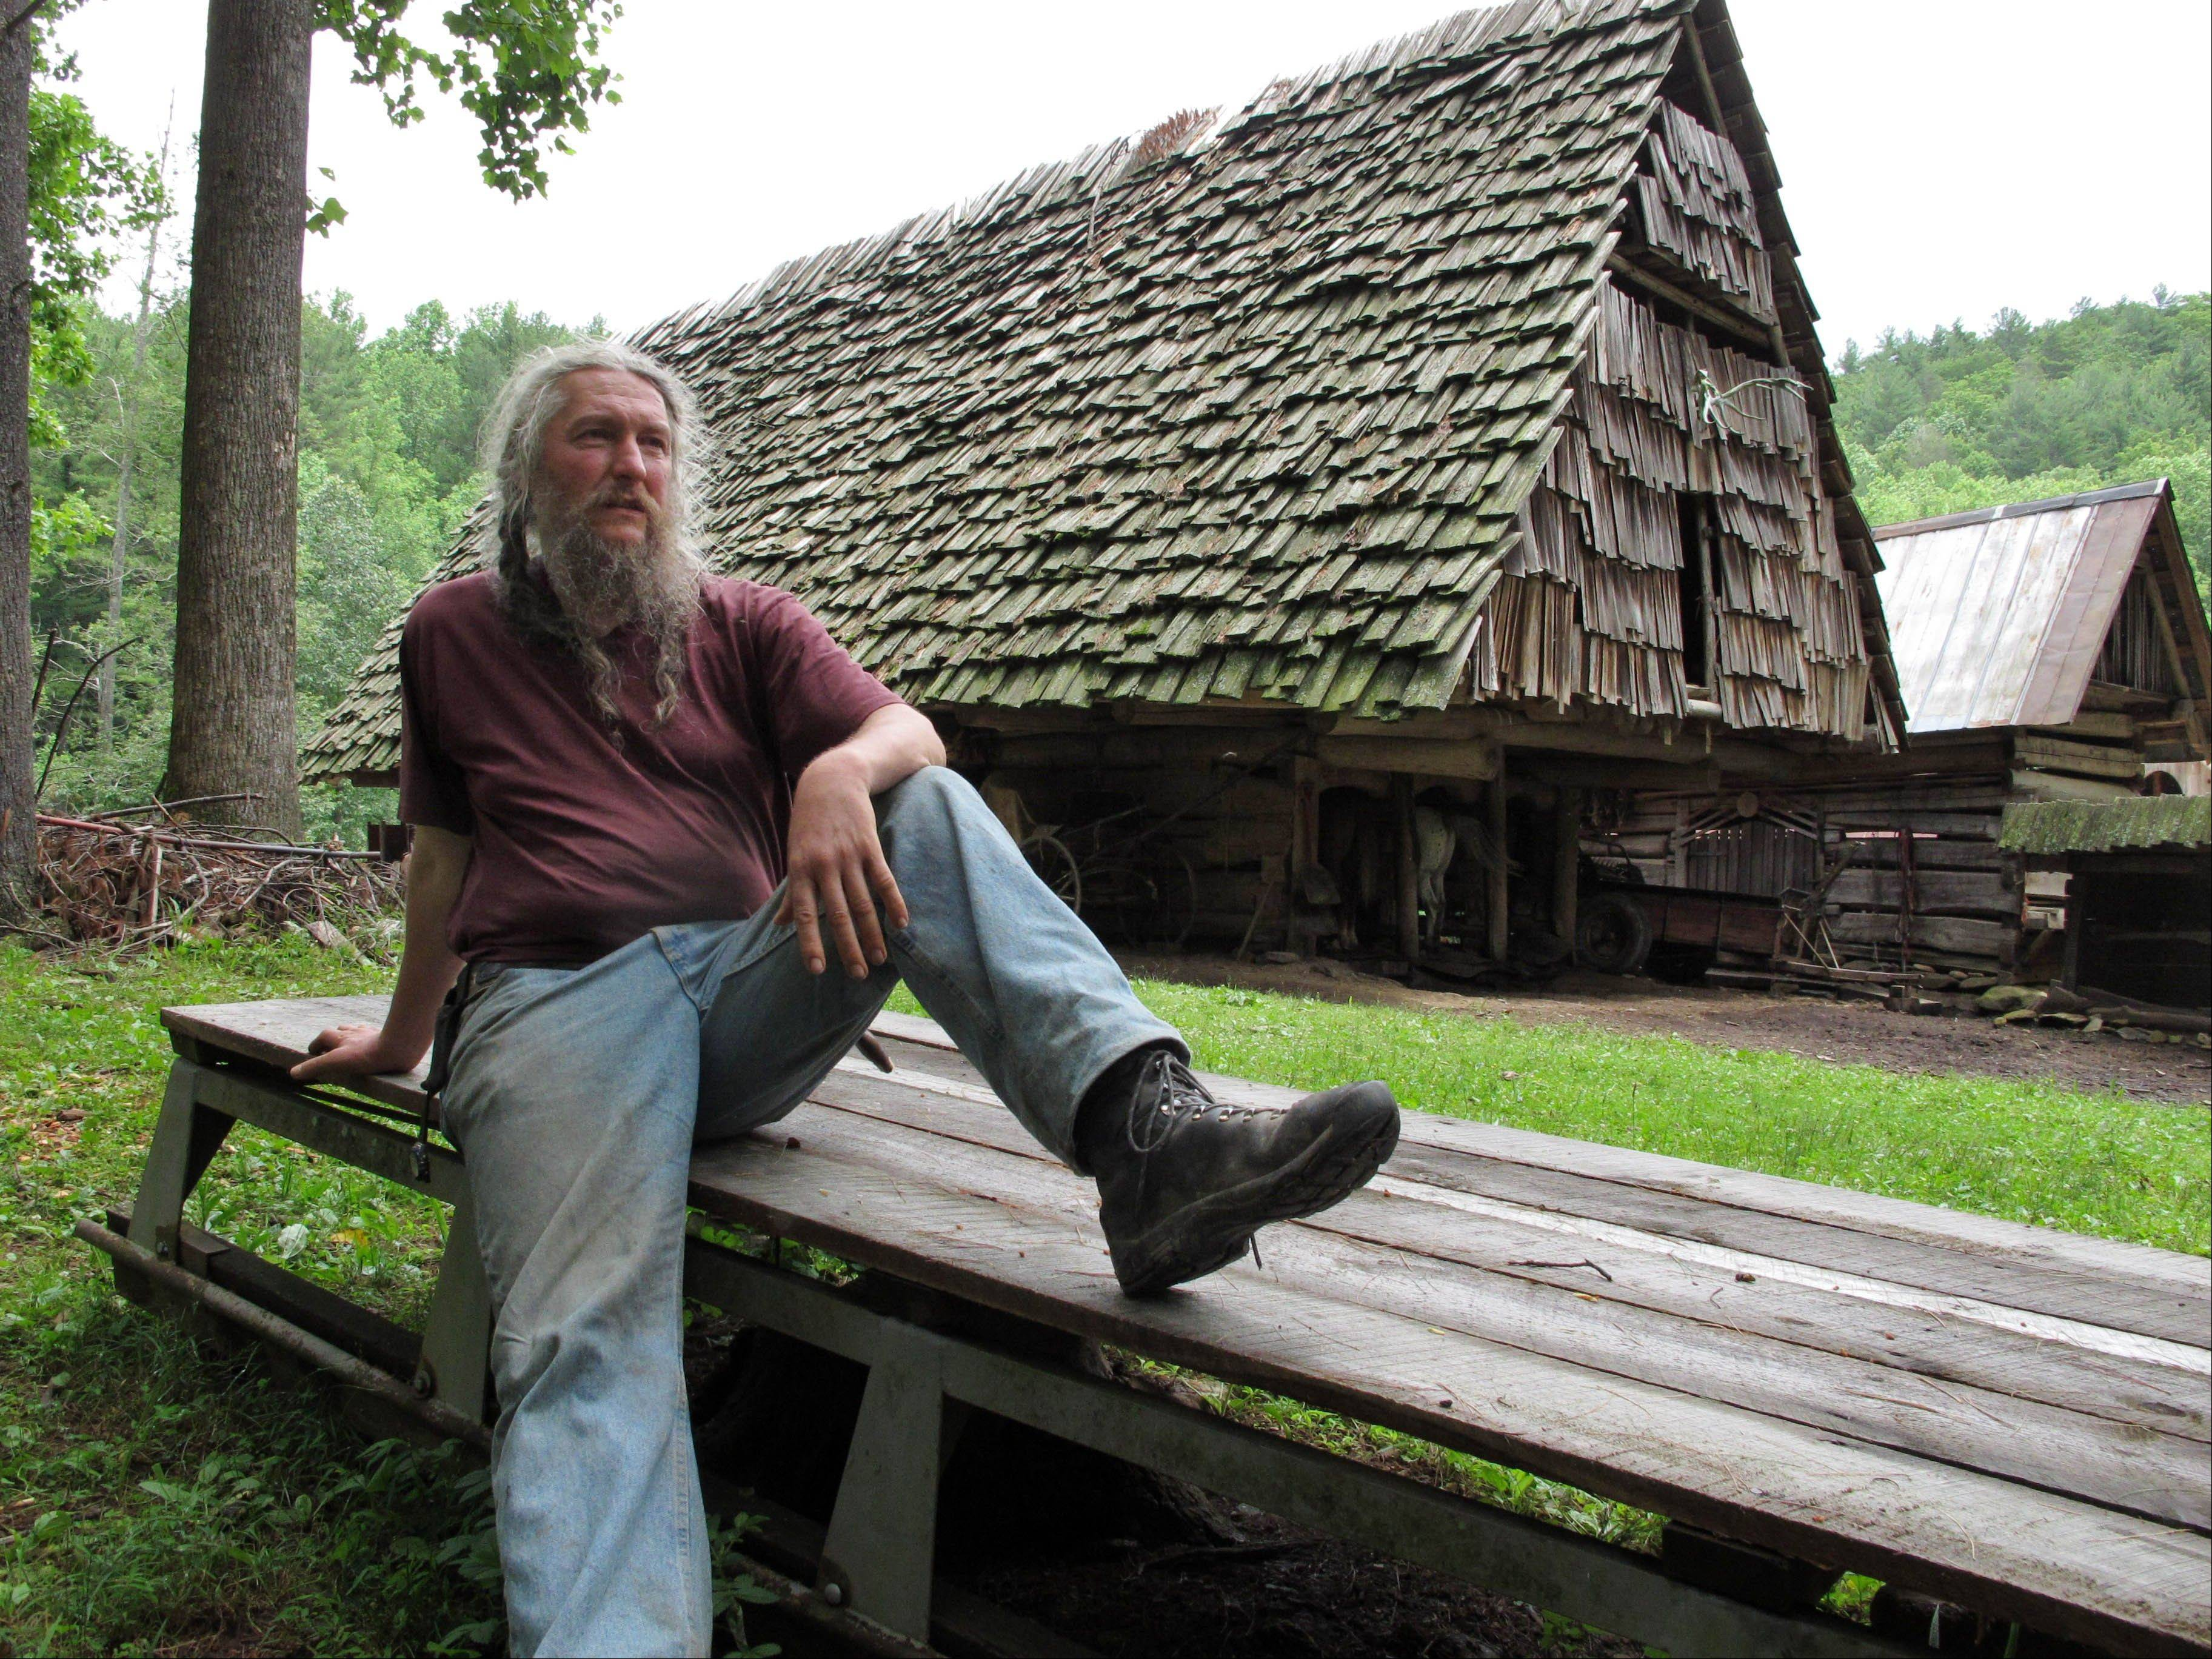 Eustace Conway rests on a wooden sledge in front of the horse barn at his Turtle Island Preserve in Triplett, N.C. People come from all over the world to learn natural living and how to go off-grid, but local officials ordered the place closed over health and safety concerns.